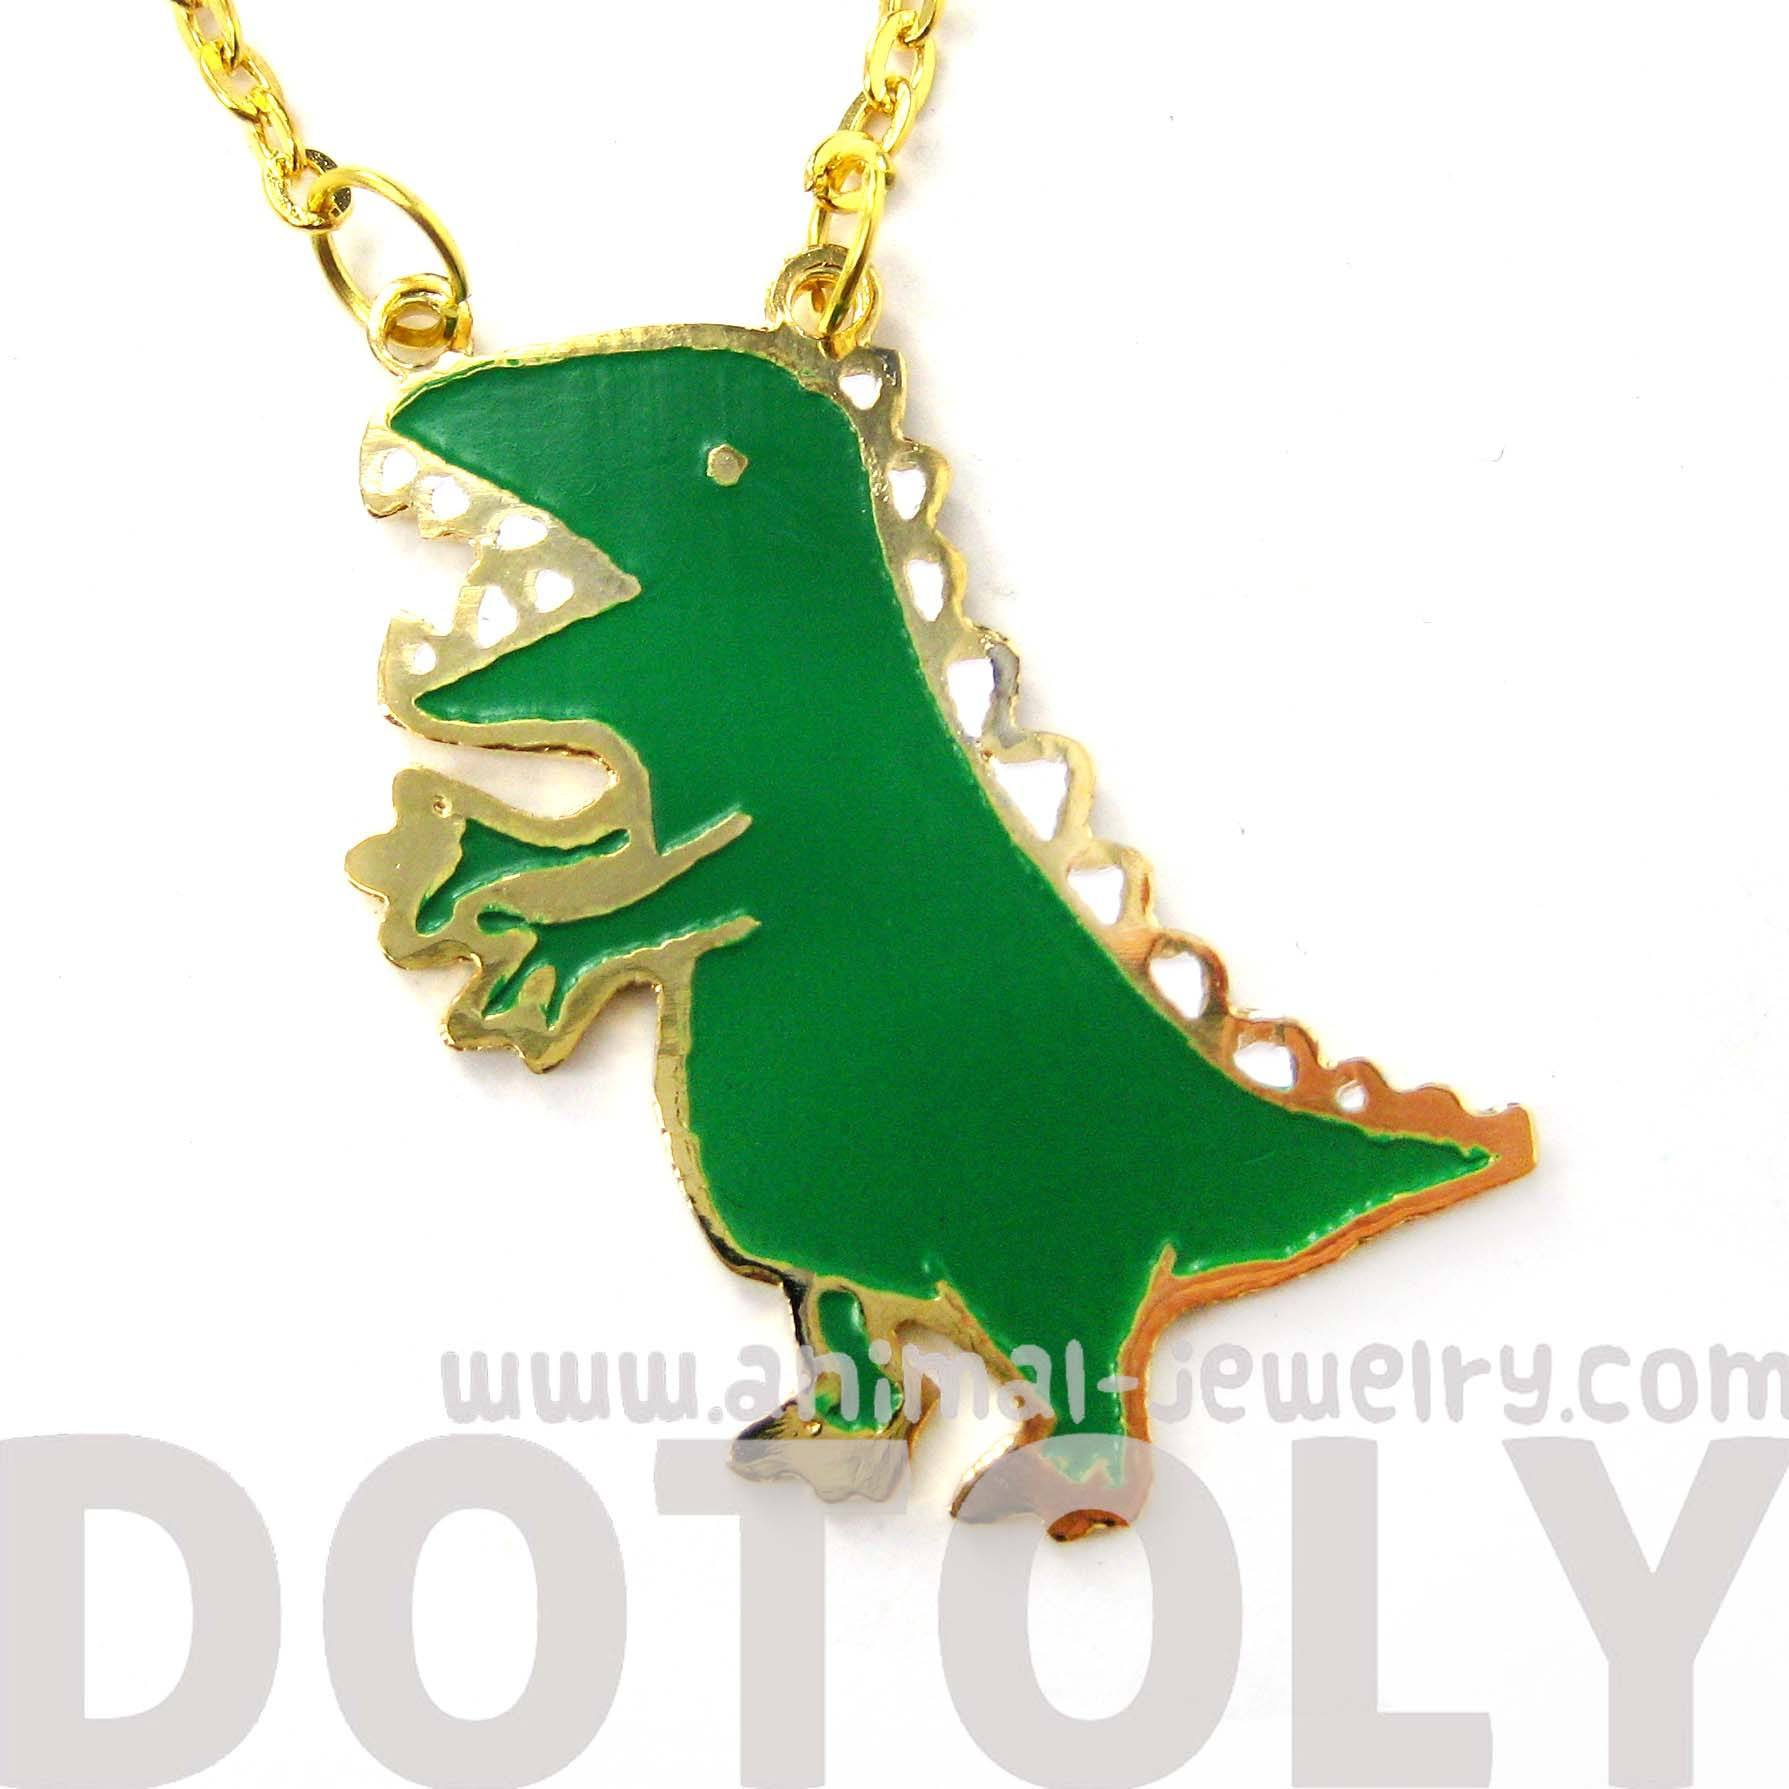 adorable-t-rex-dinosaur-shaped-animal-pendant-necklace-limited-edition